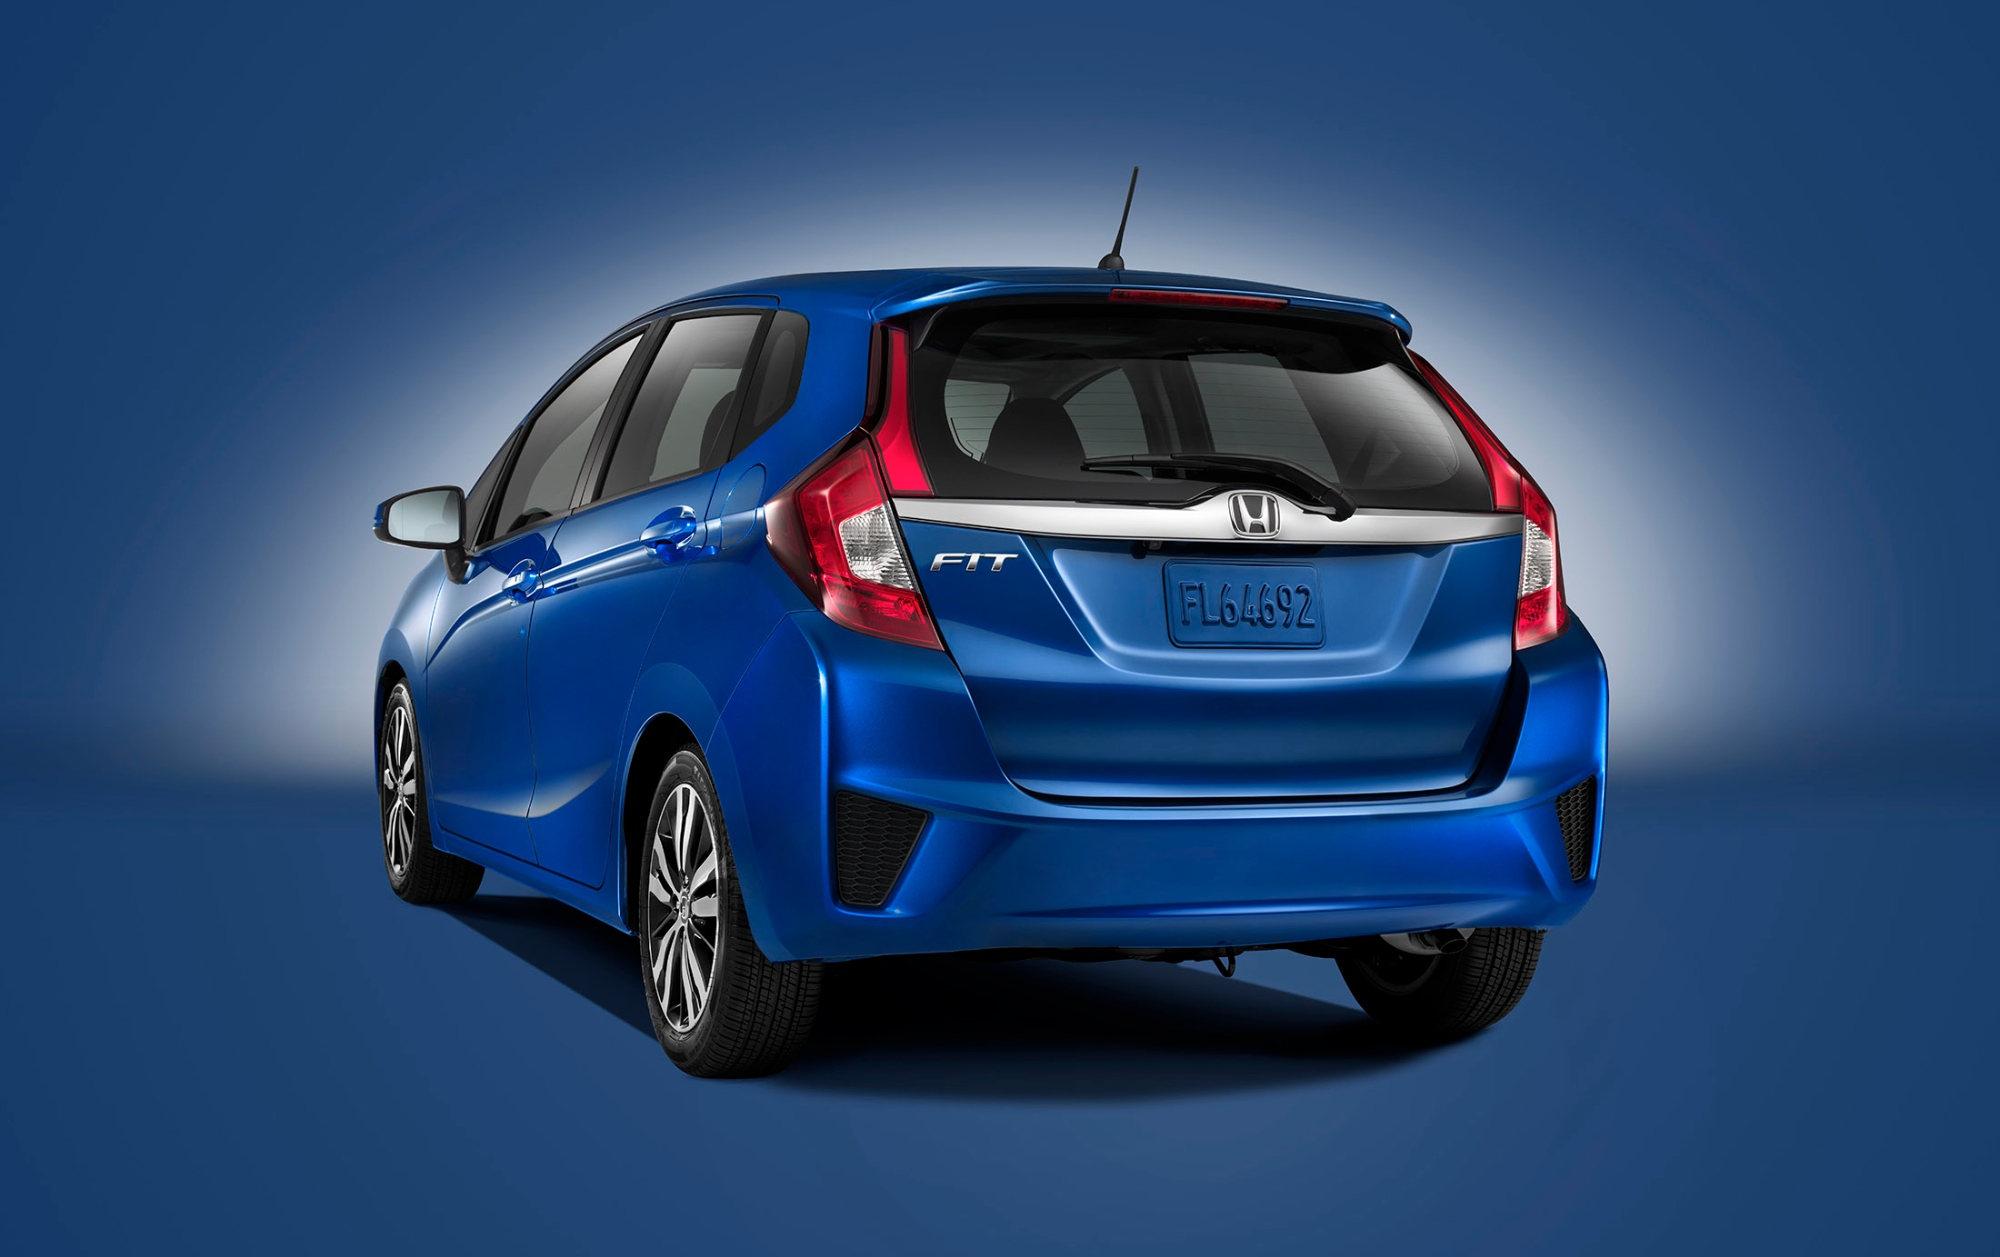 Honda Fit Mpg >> 2015 Honda Fit Is a Cool New Urban Car for $15,525 ...